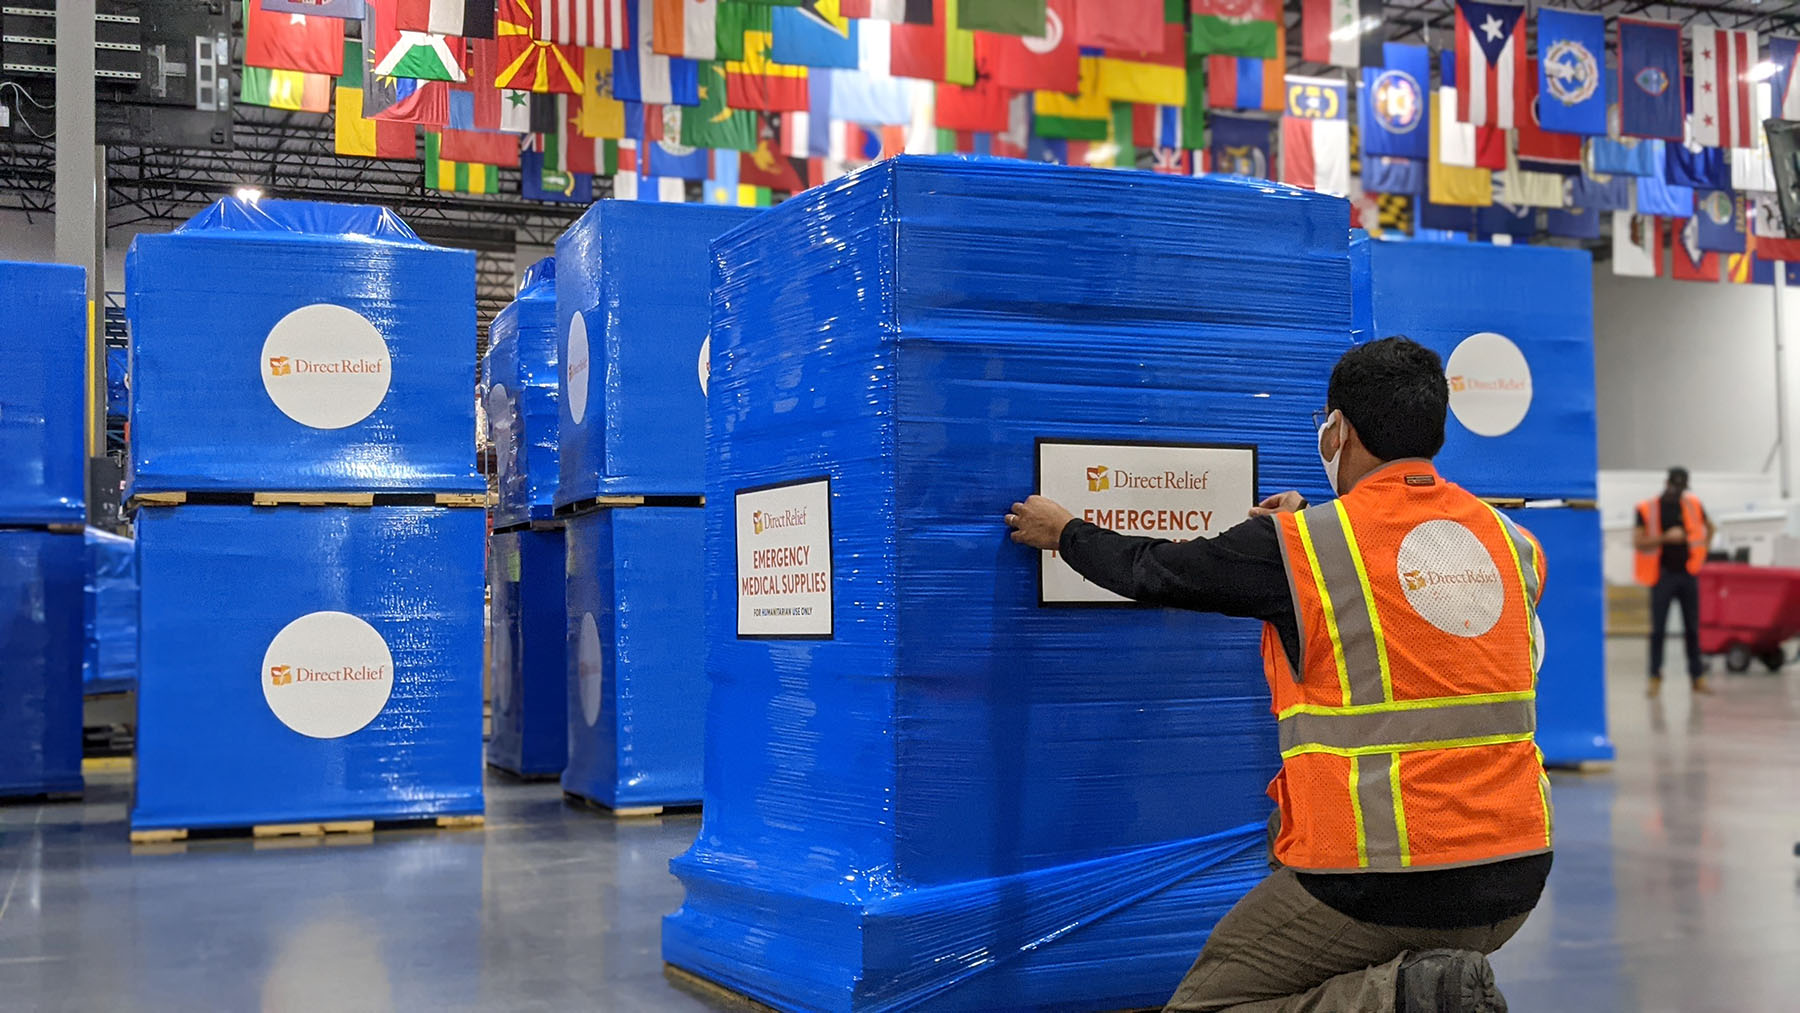 Emergency medical supplies, including 200 oxygen concentrators, are prepped for shipment on Jan. 12, 2021, at Direct Relief's warehouse. The shipment was delivered to Lancaster, California, where health facilities are working to care for an influx of Covid-19 patients. (Tony Morain/Direct Relief)